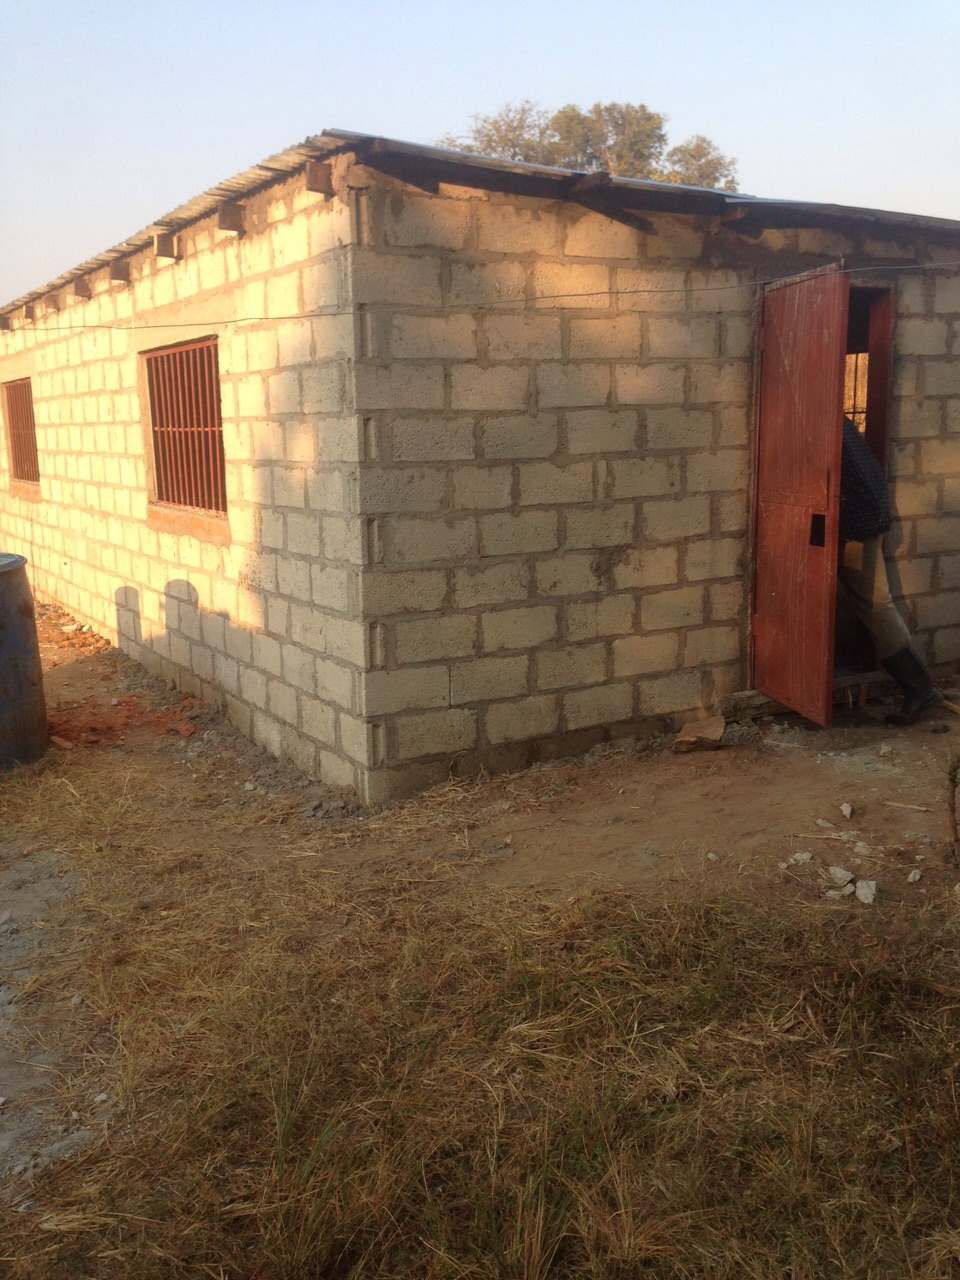 The finished chicken house